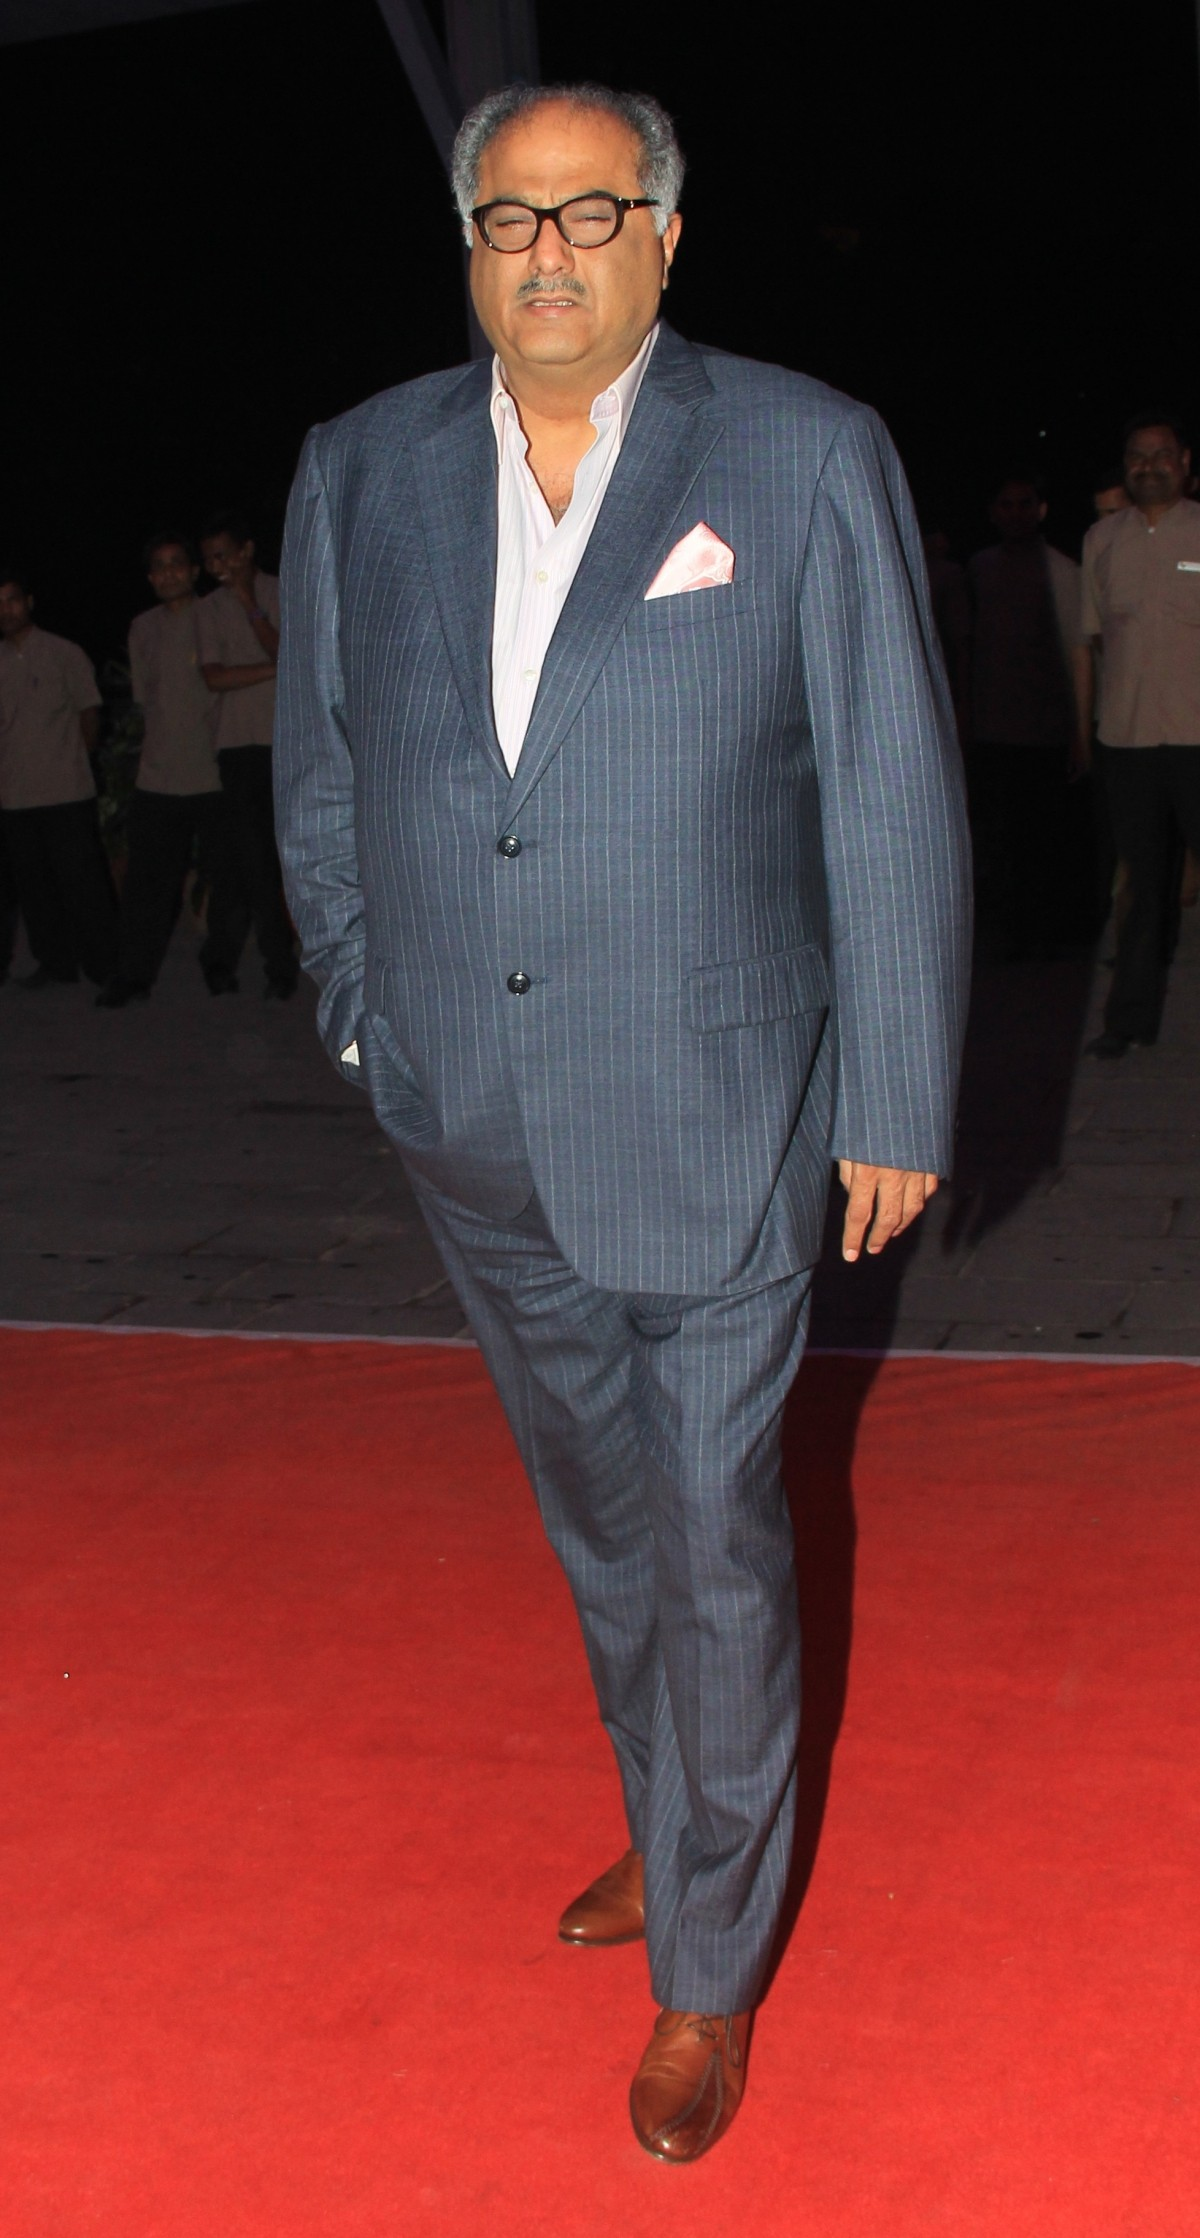 Boney Kapoor arrives for Kussh Sinha's reception party